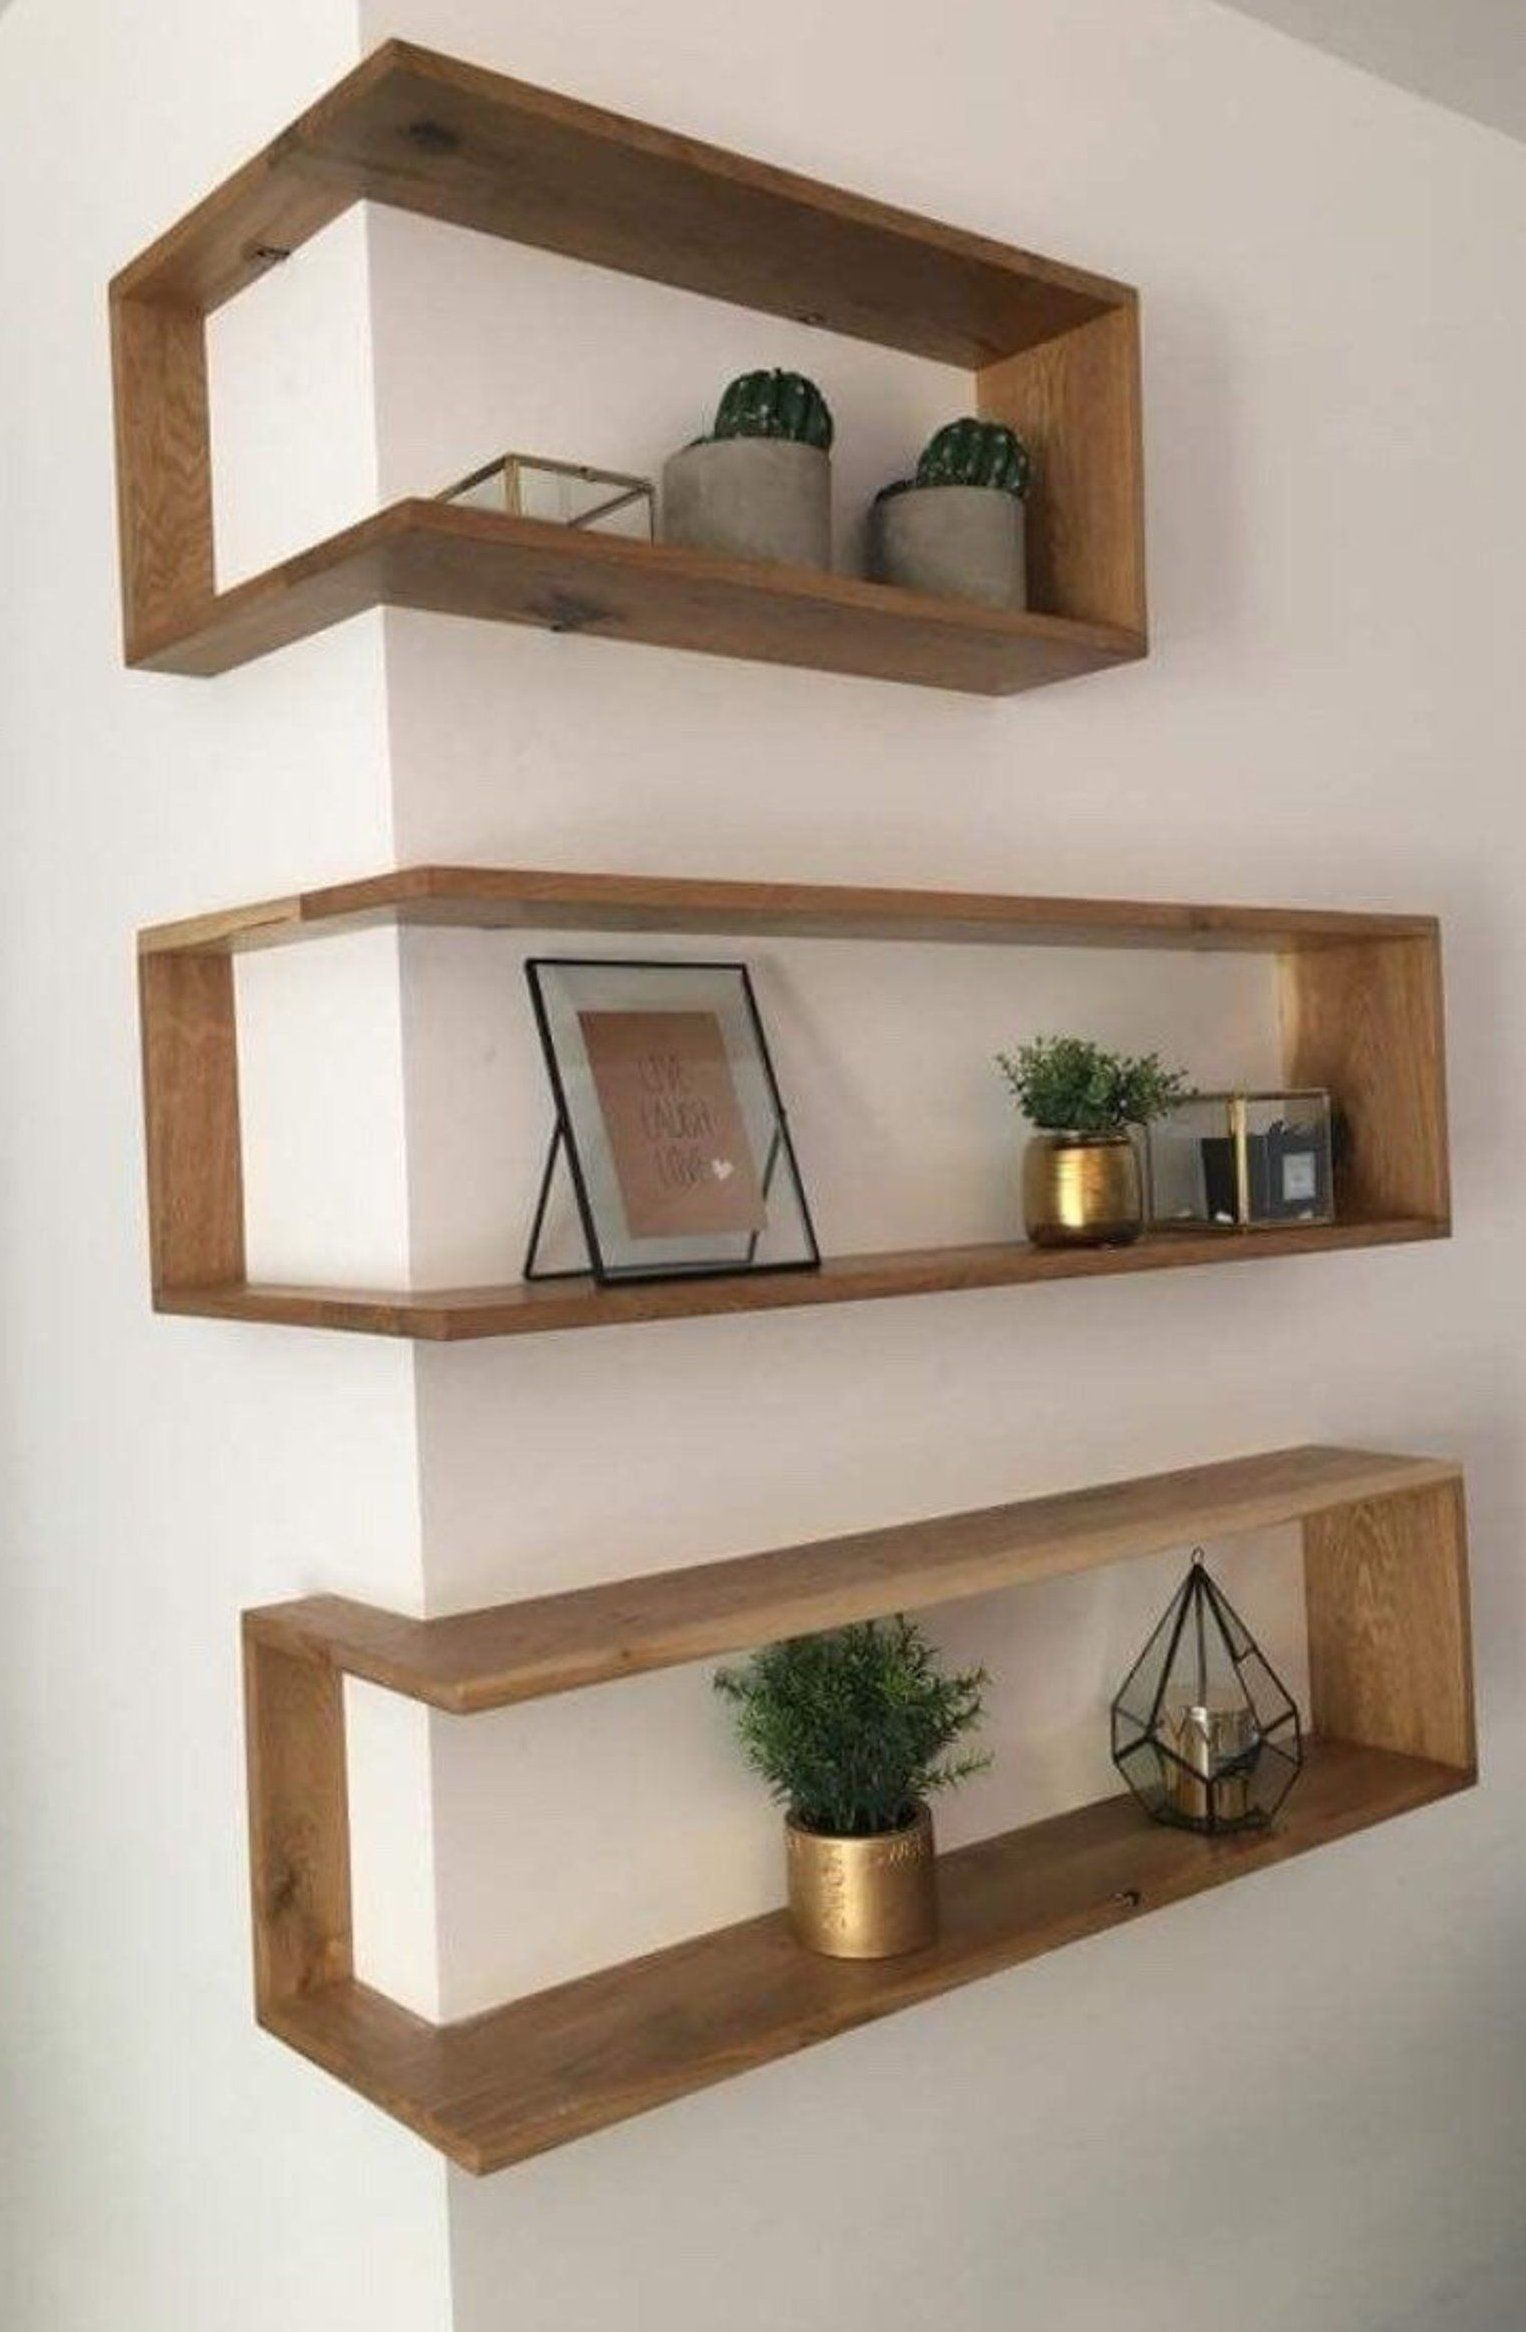 On Sale Diy Woodworking Plans And Instructions Hardwood Corner Shelves Documents Only Kitchenshelves In 2020 Home Diy Woodworking Plans Diy Diy Home Decor